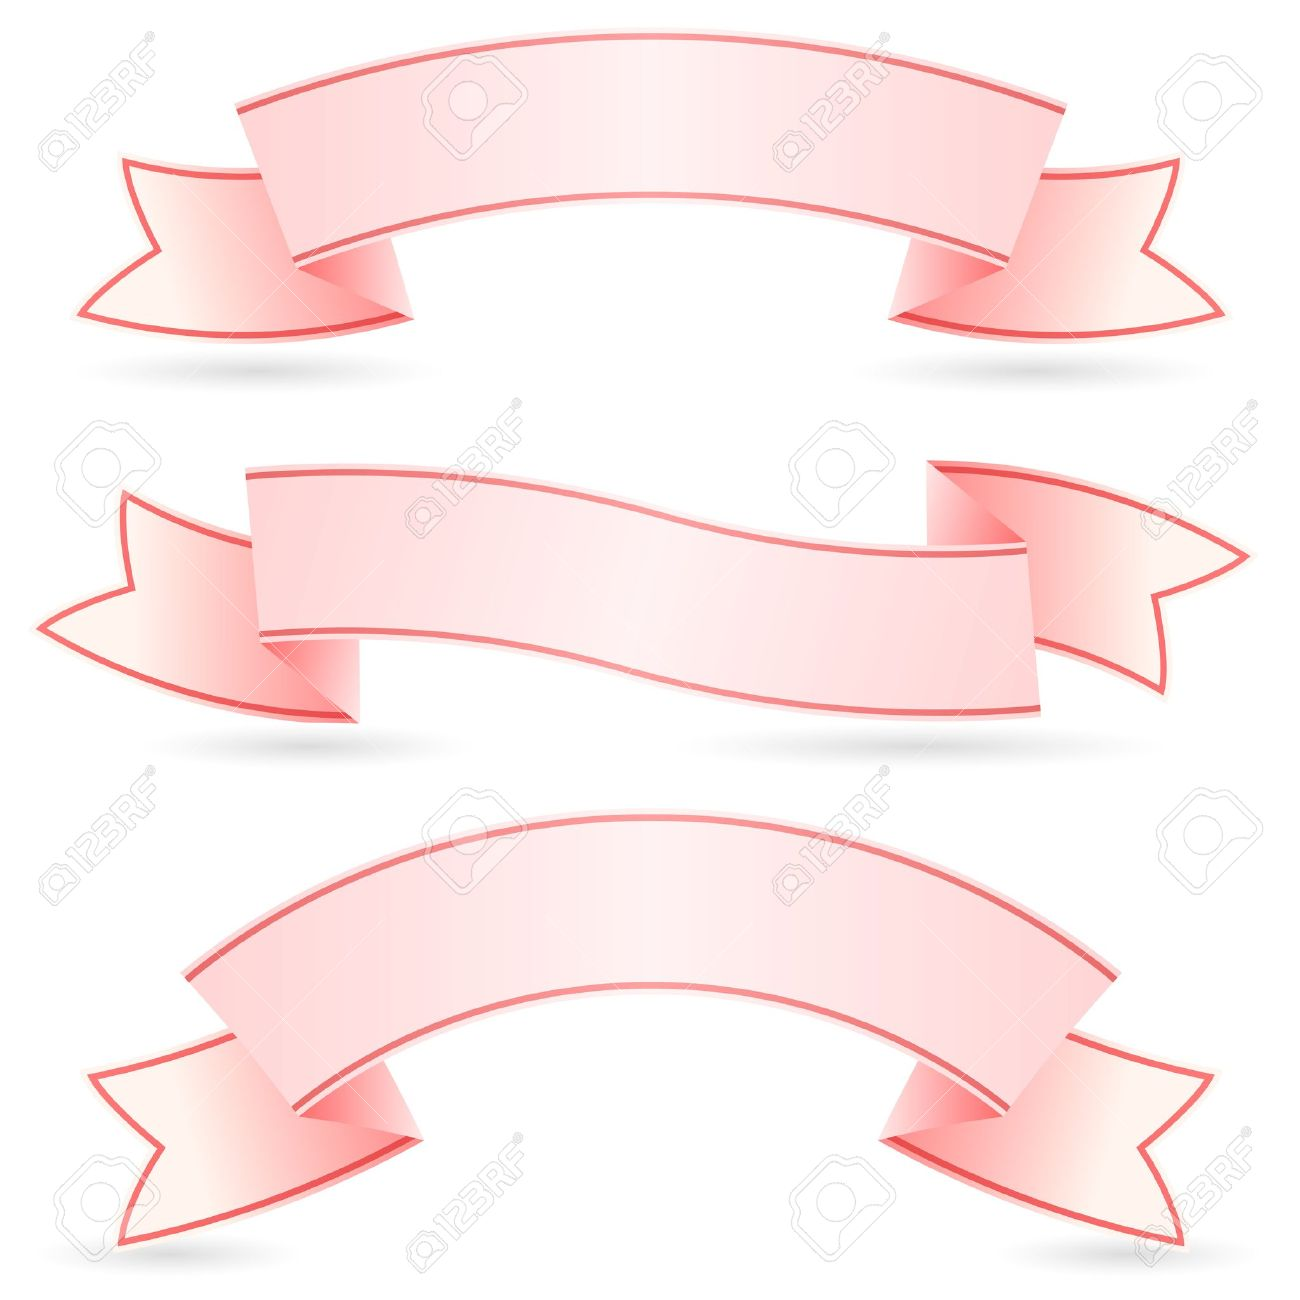 Set of Pink Banners. Illustration on white background for design Stock Vector - 12349621